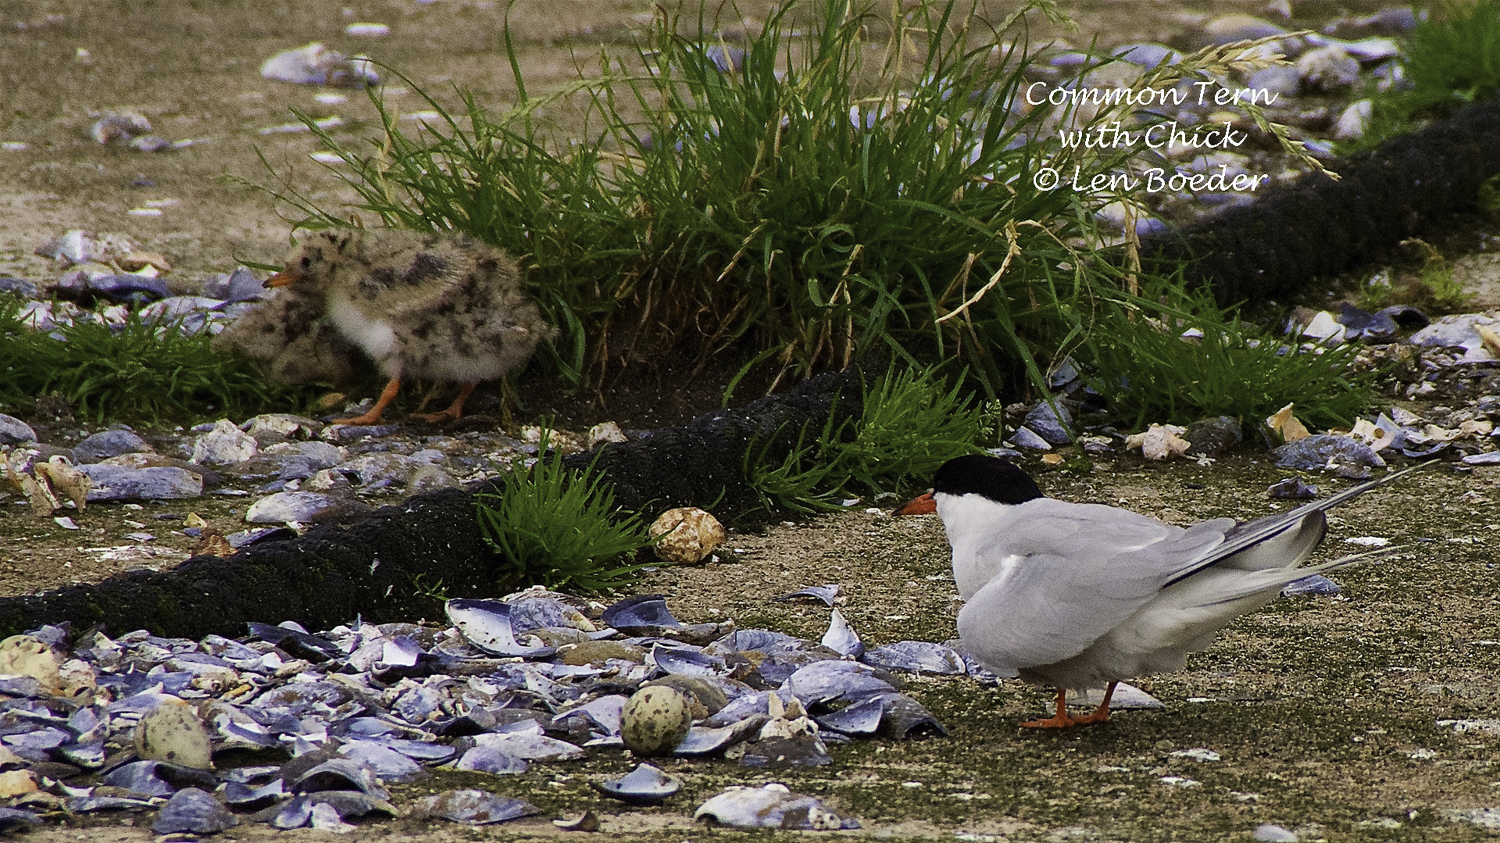 I have never seen a tern chick before. They are cute!!